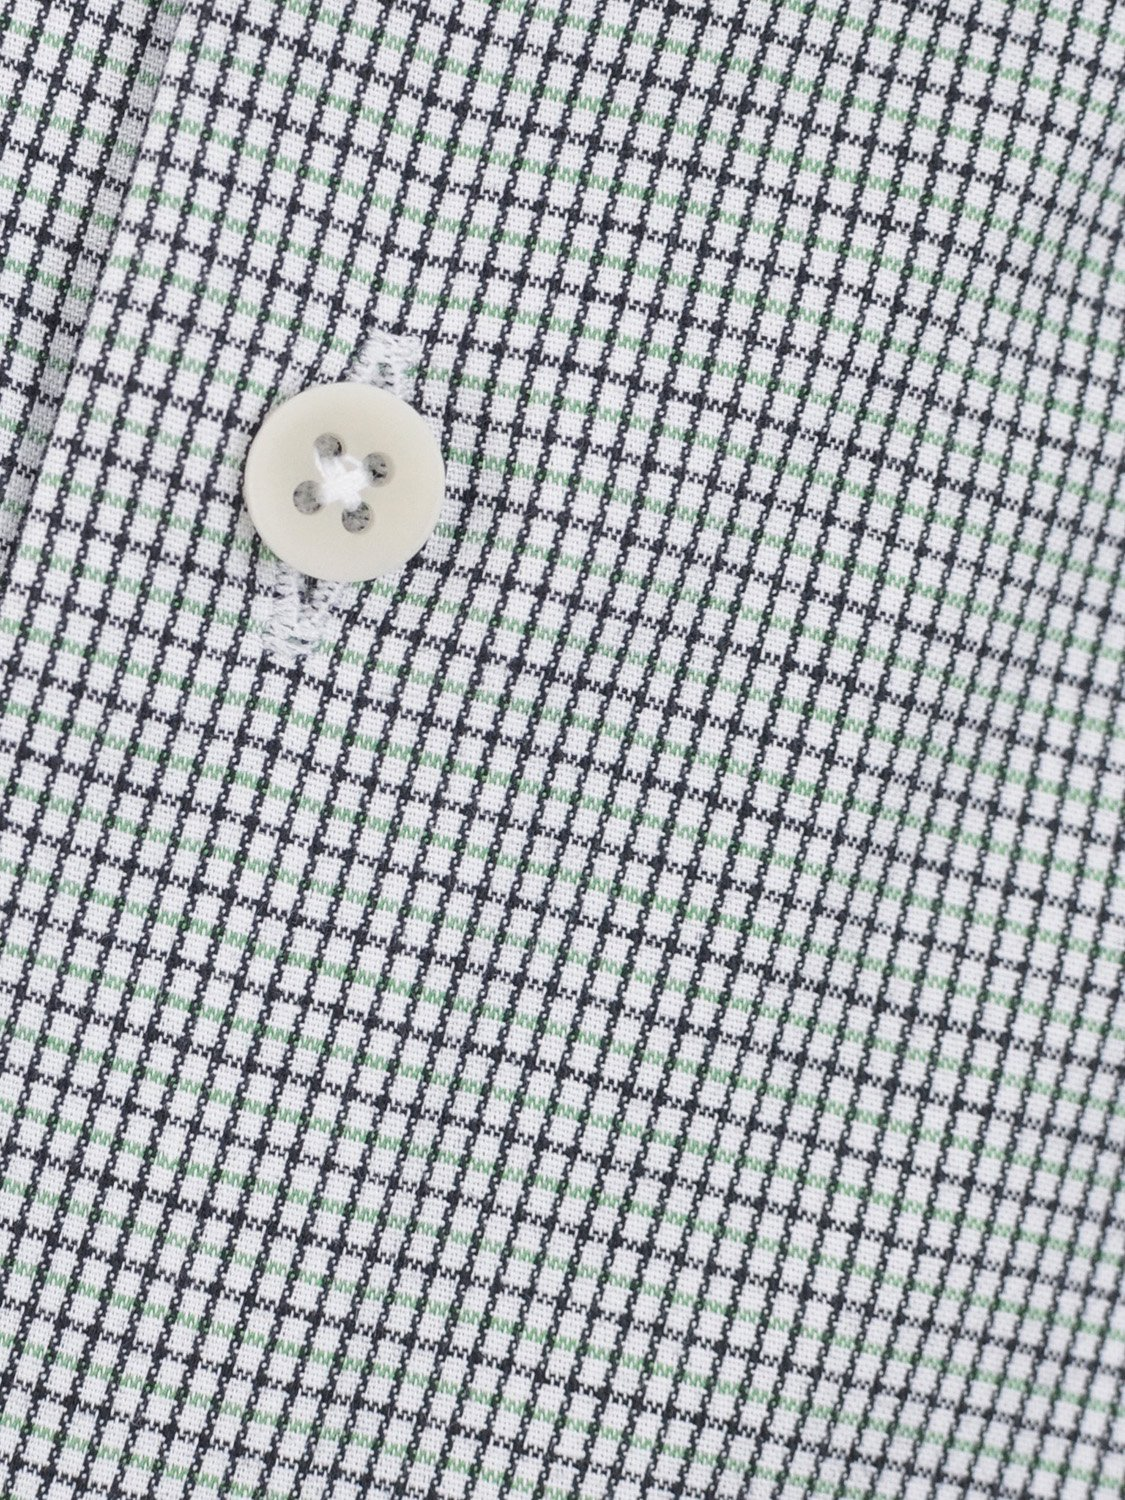 carpasus sustainable organic cotton shirt black green check. Nachhaltiges Carpasus Hemd aus Bio Baumwolle in Karo Schwarz Grün